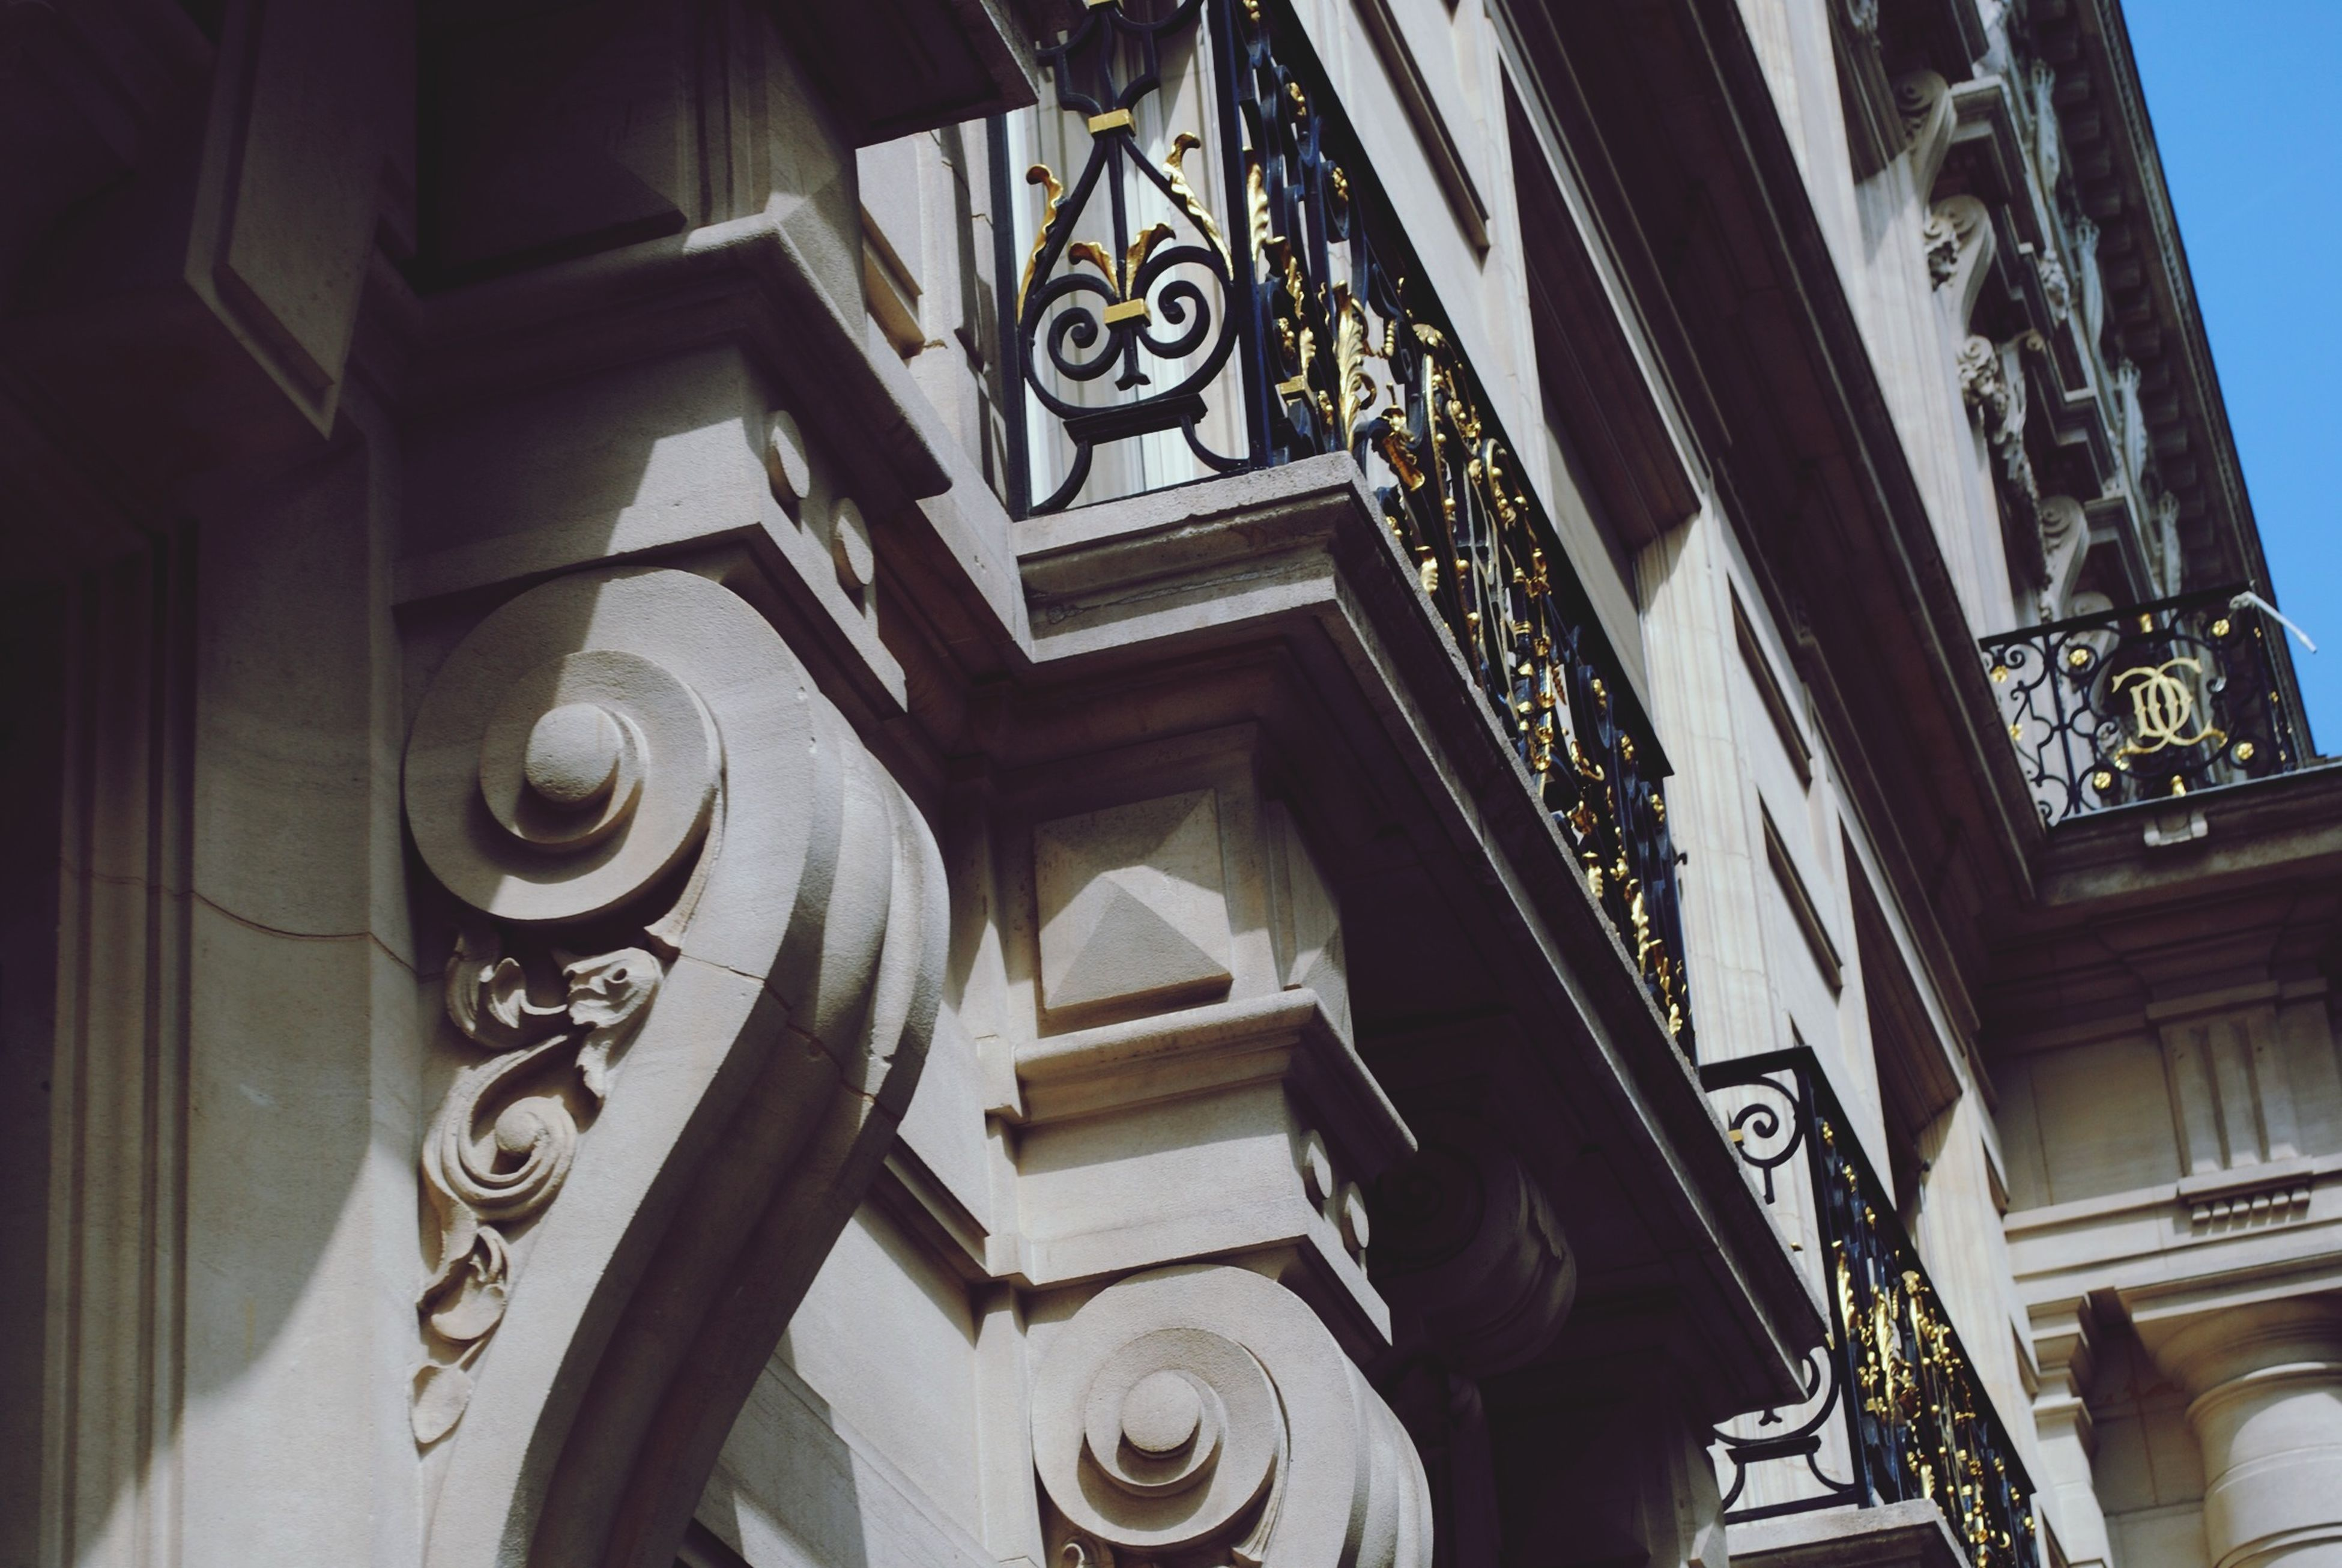 architecture, low angle view, built structure, building exterior, art and craft, art, ornate, creativity, design, carving - craft product, window, building, human representation, history, place of worship, religion, indoors, no people, day, architectural feature